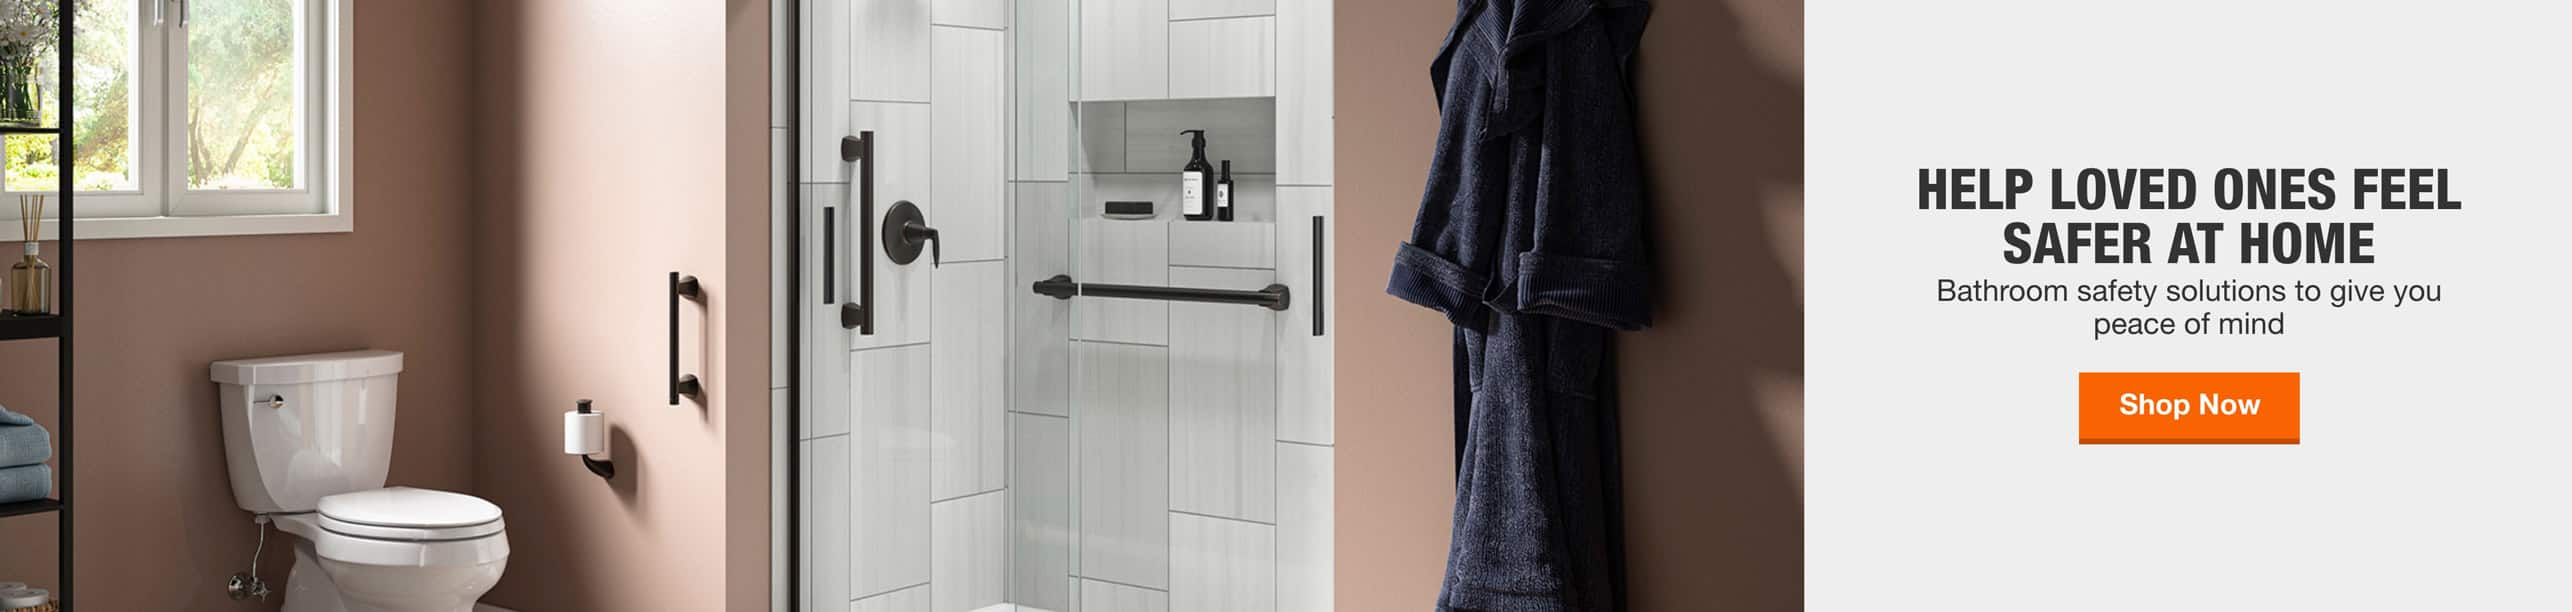 Bathroom safety solutions to give you peace of mind